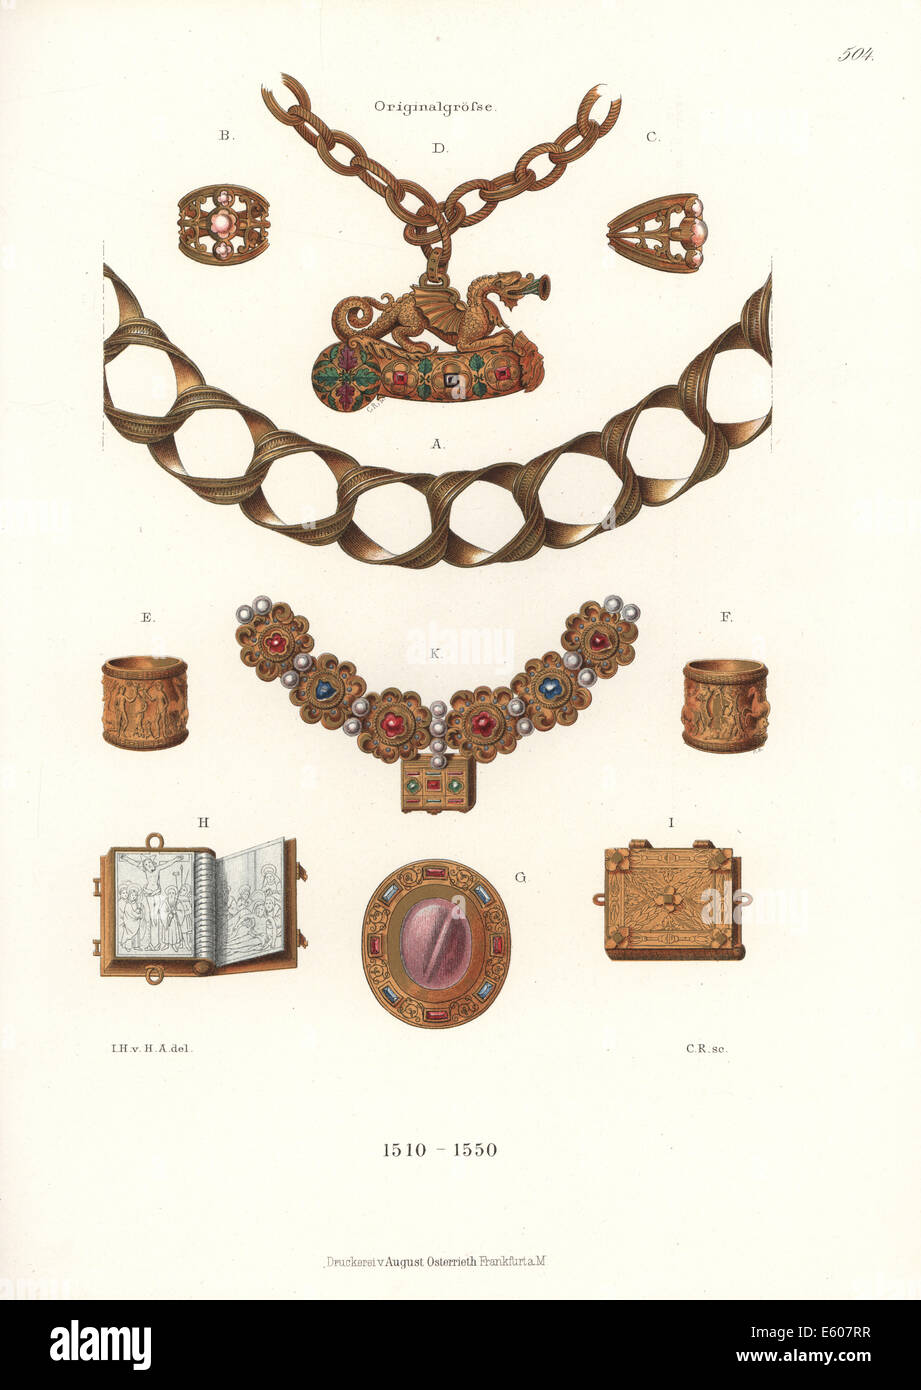 German jewelry, early 16th century. - Stock Image